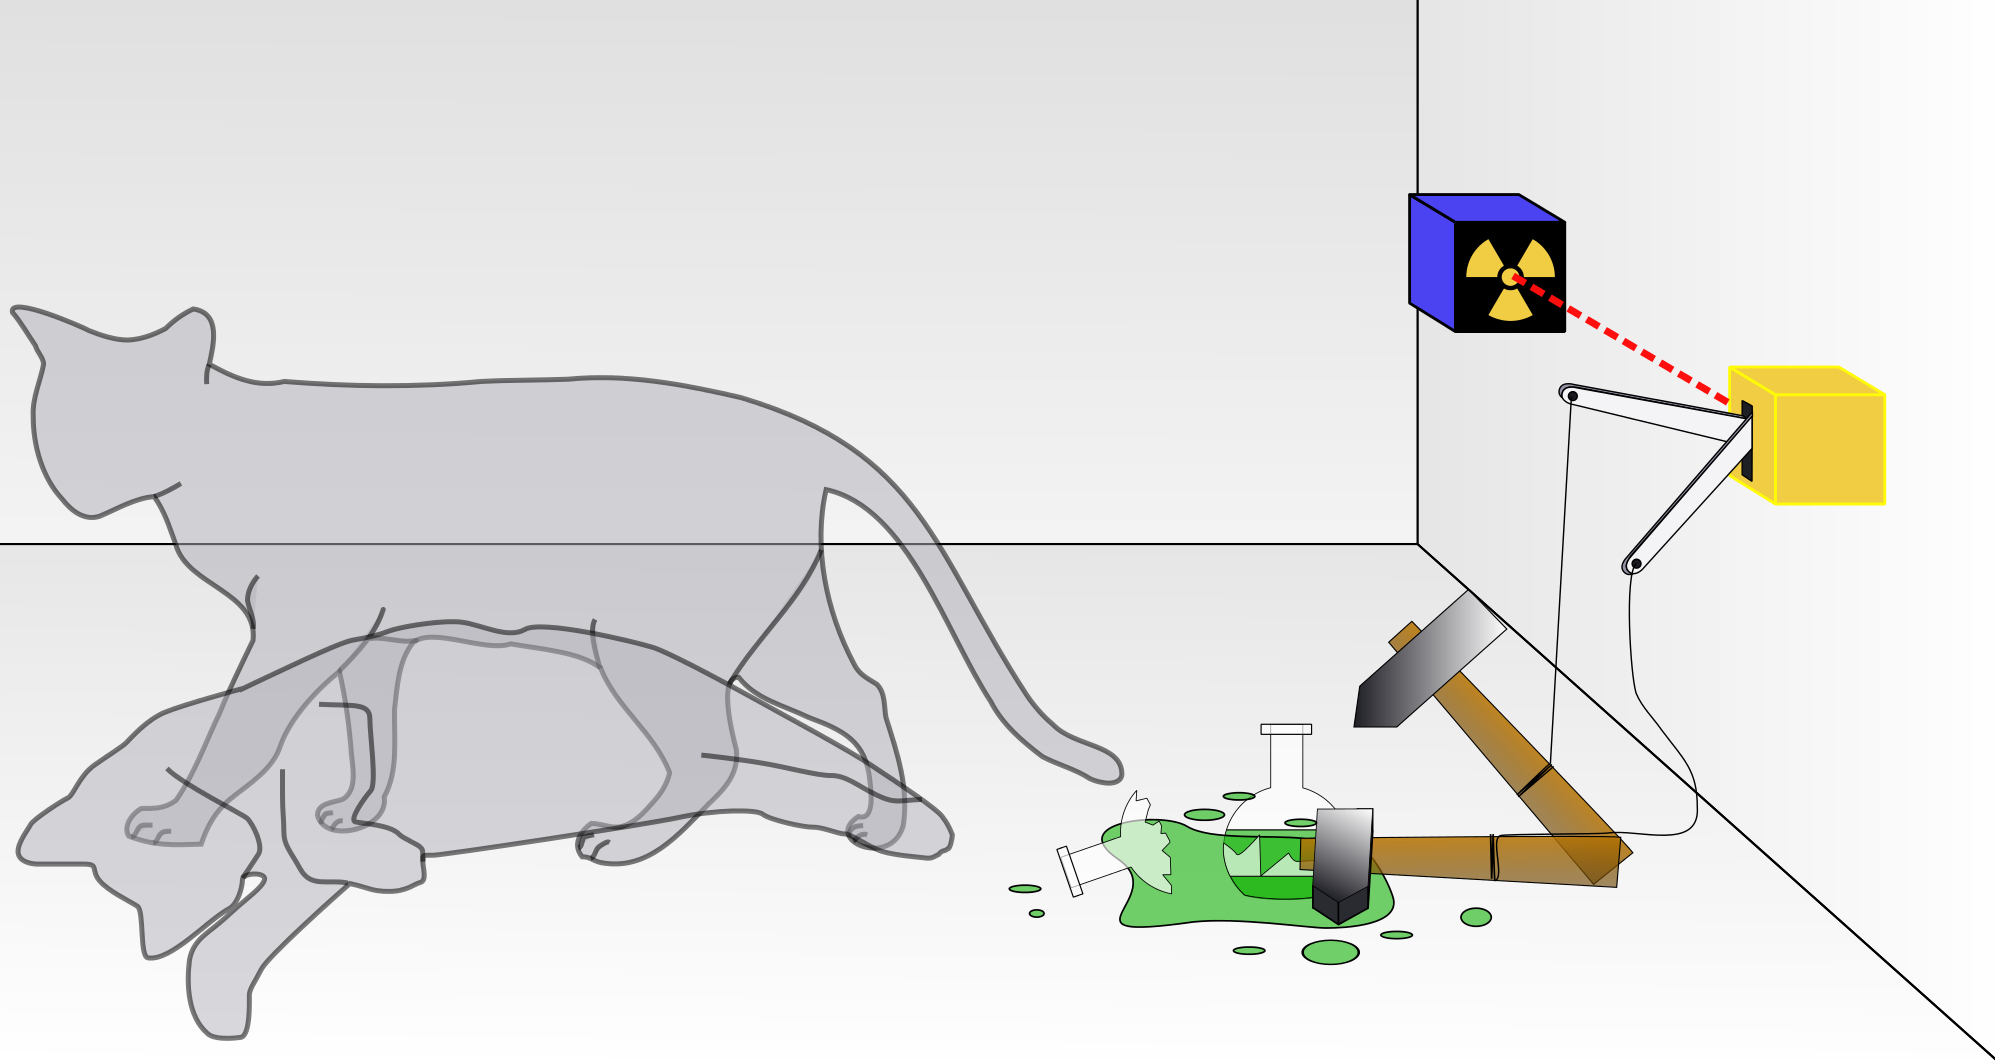 A representation of Schrödinger's cat, in which the animal is simultaneously alive and dead.   Dhatfield/Wikimedia Commons  (CC BY-SA 3.0)